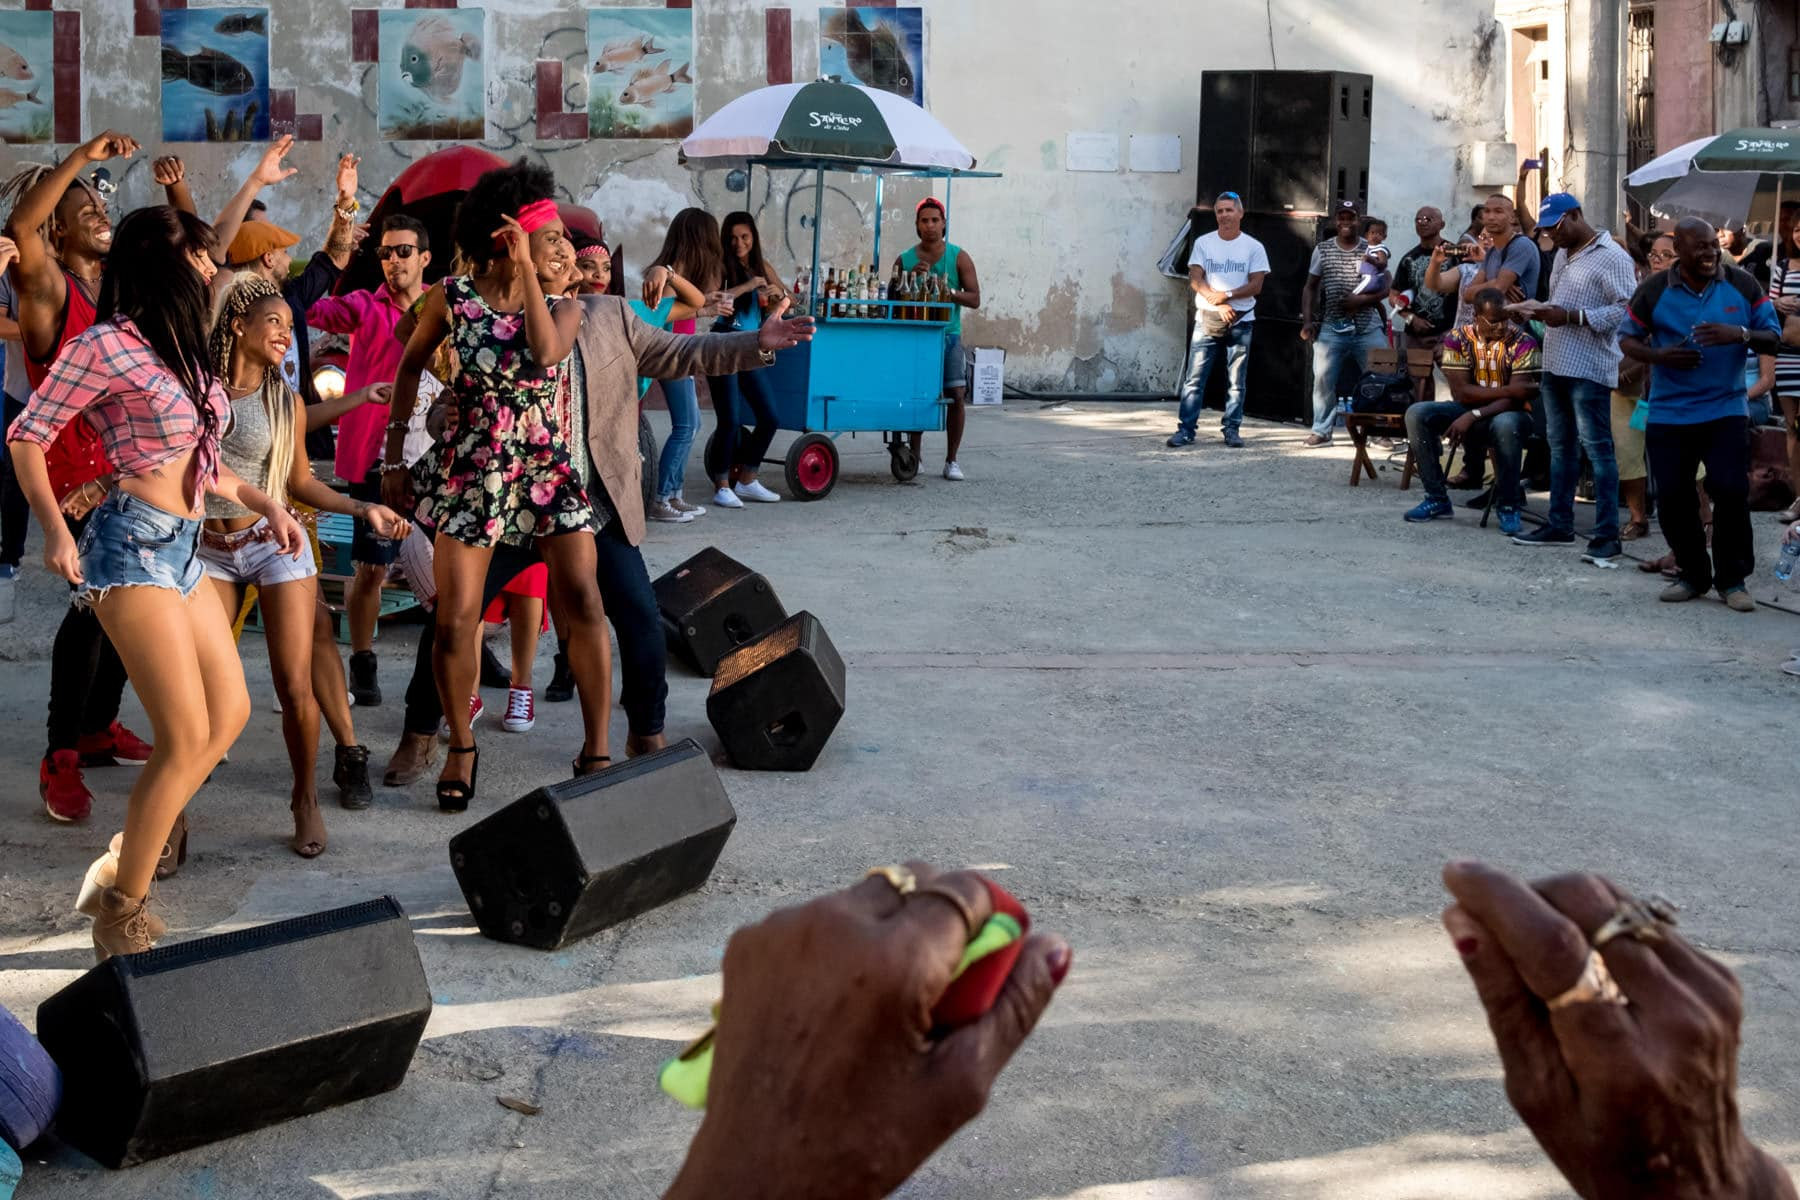 Cuban music video being made in Havana's old town